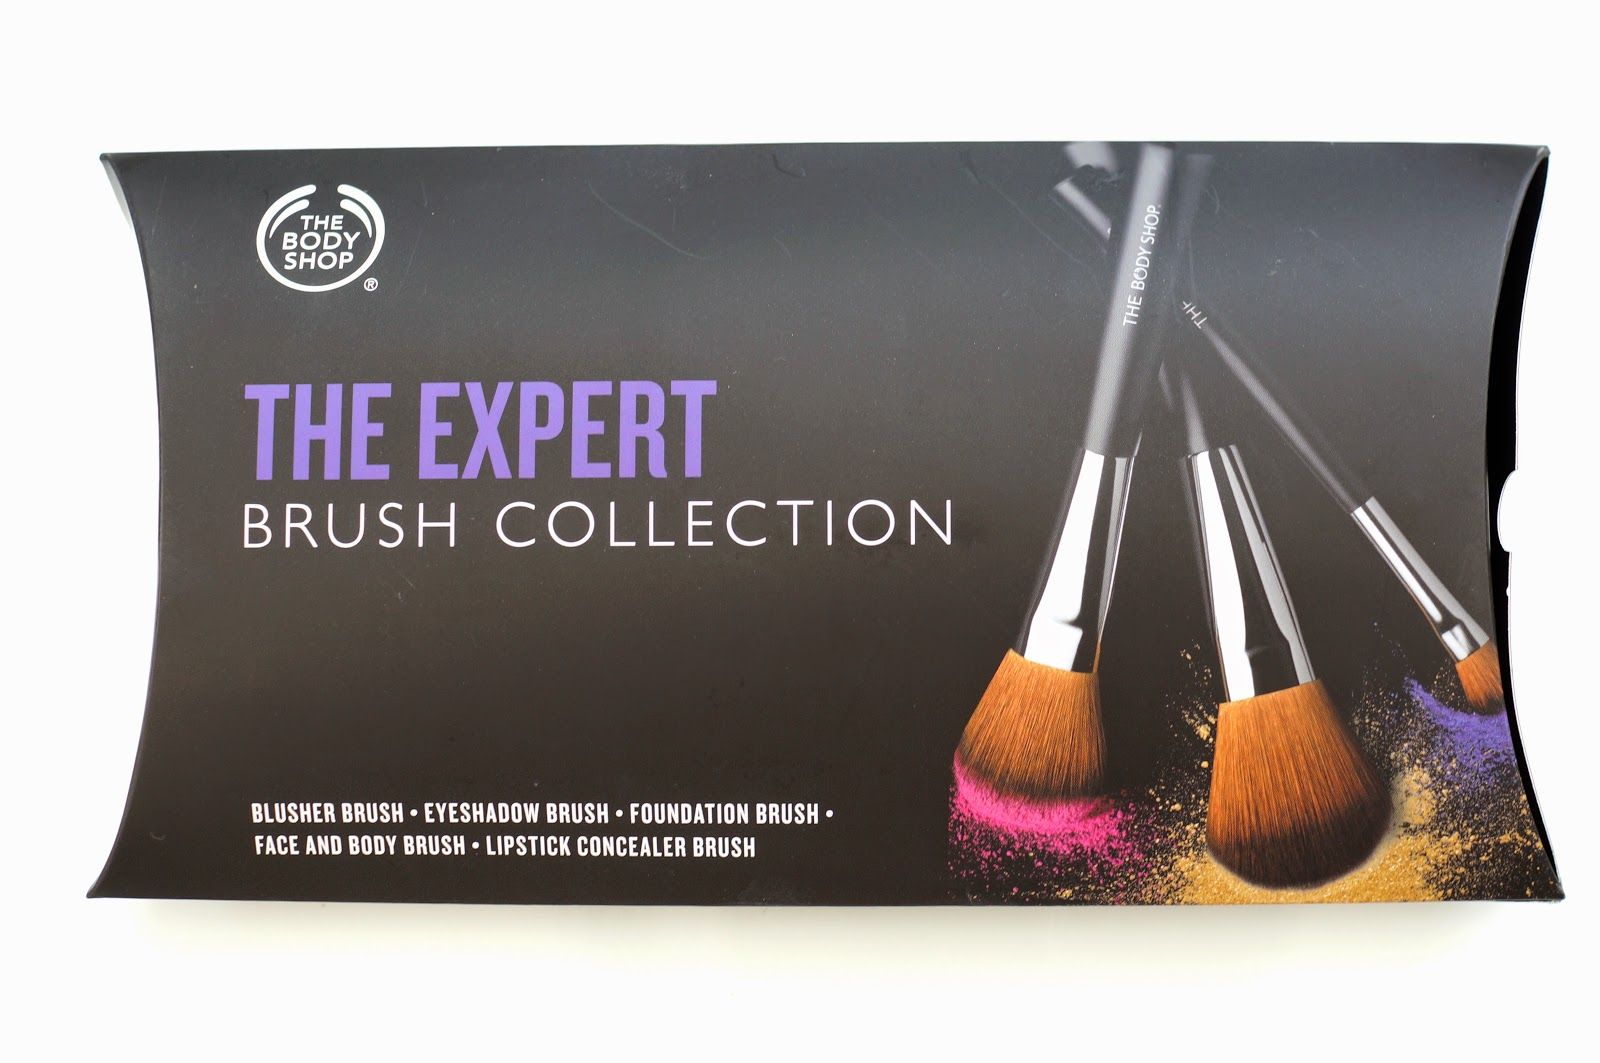 The Body Shop The Expert Brush Collection